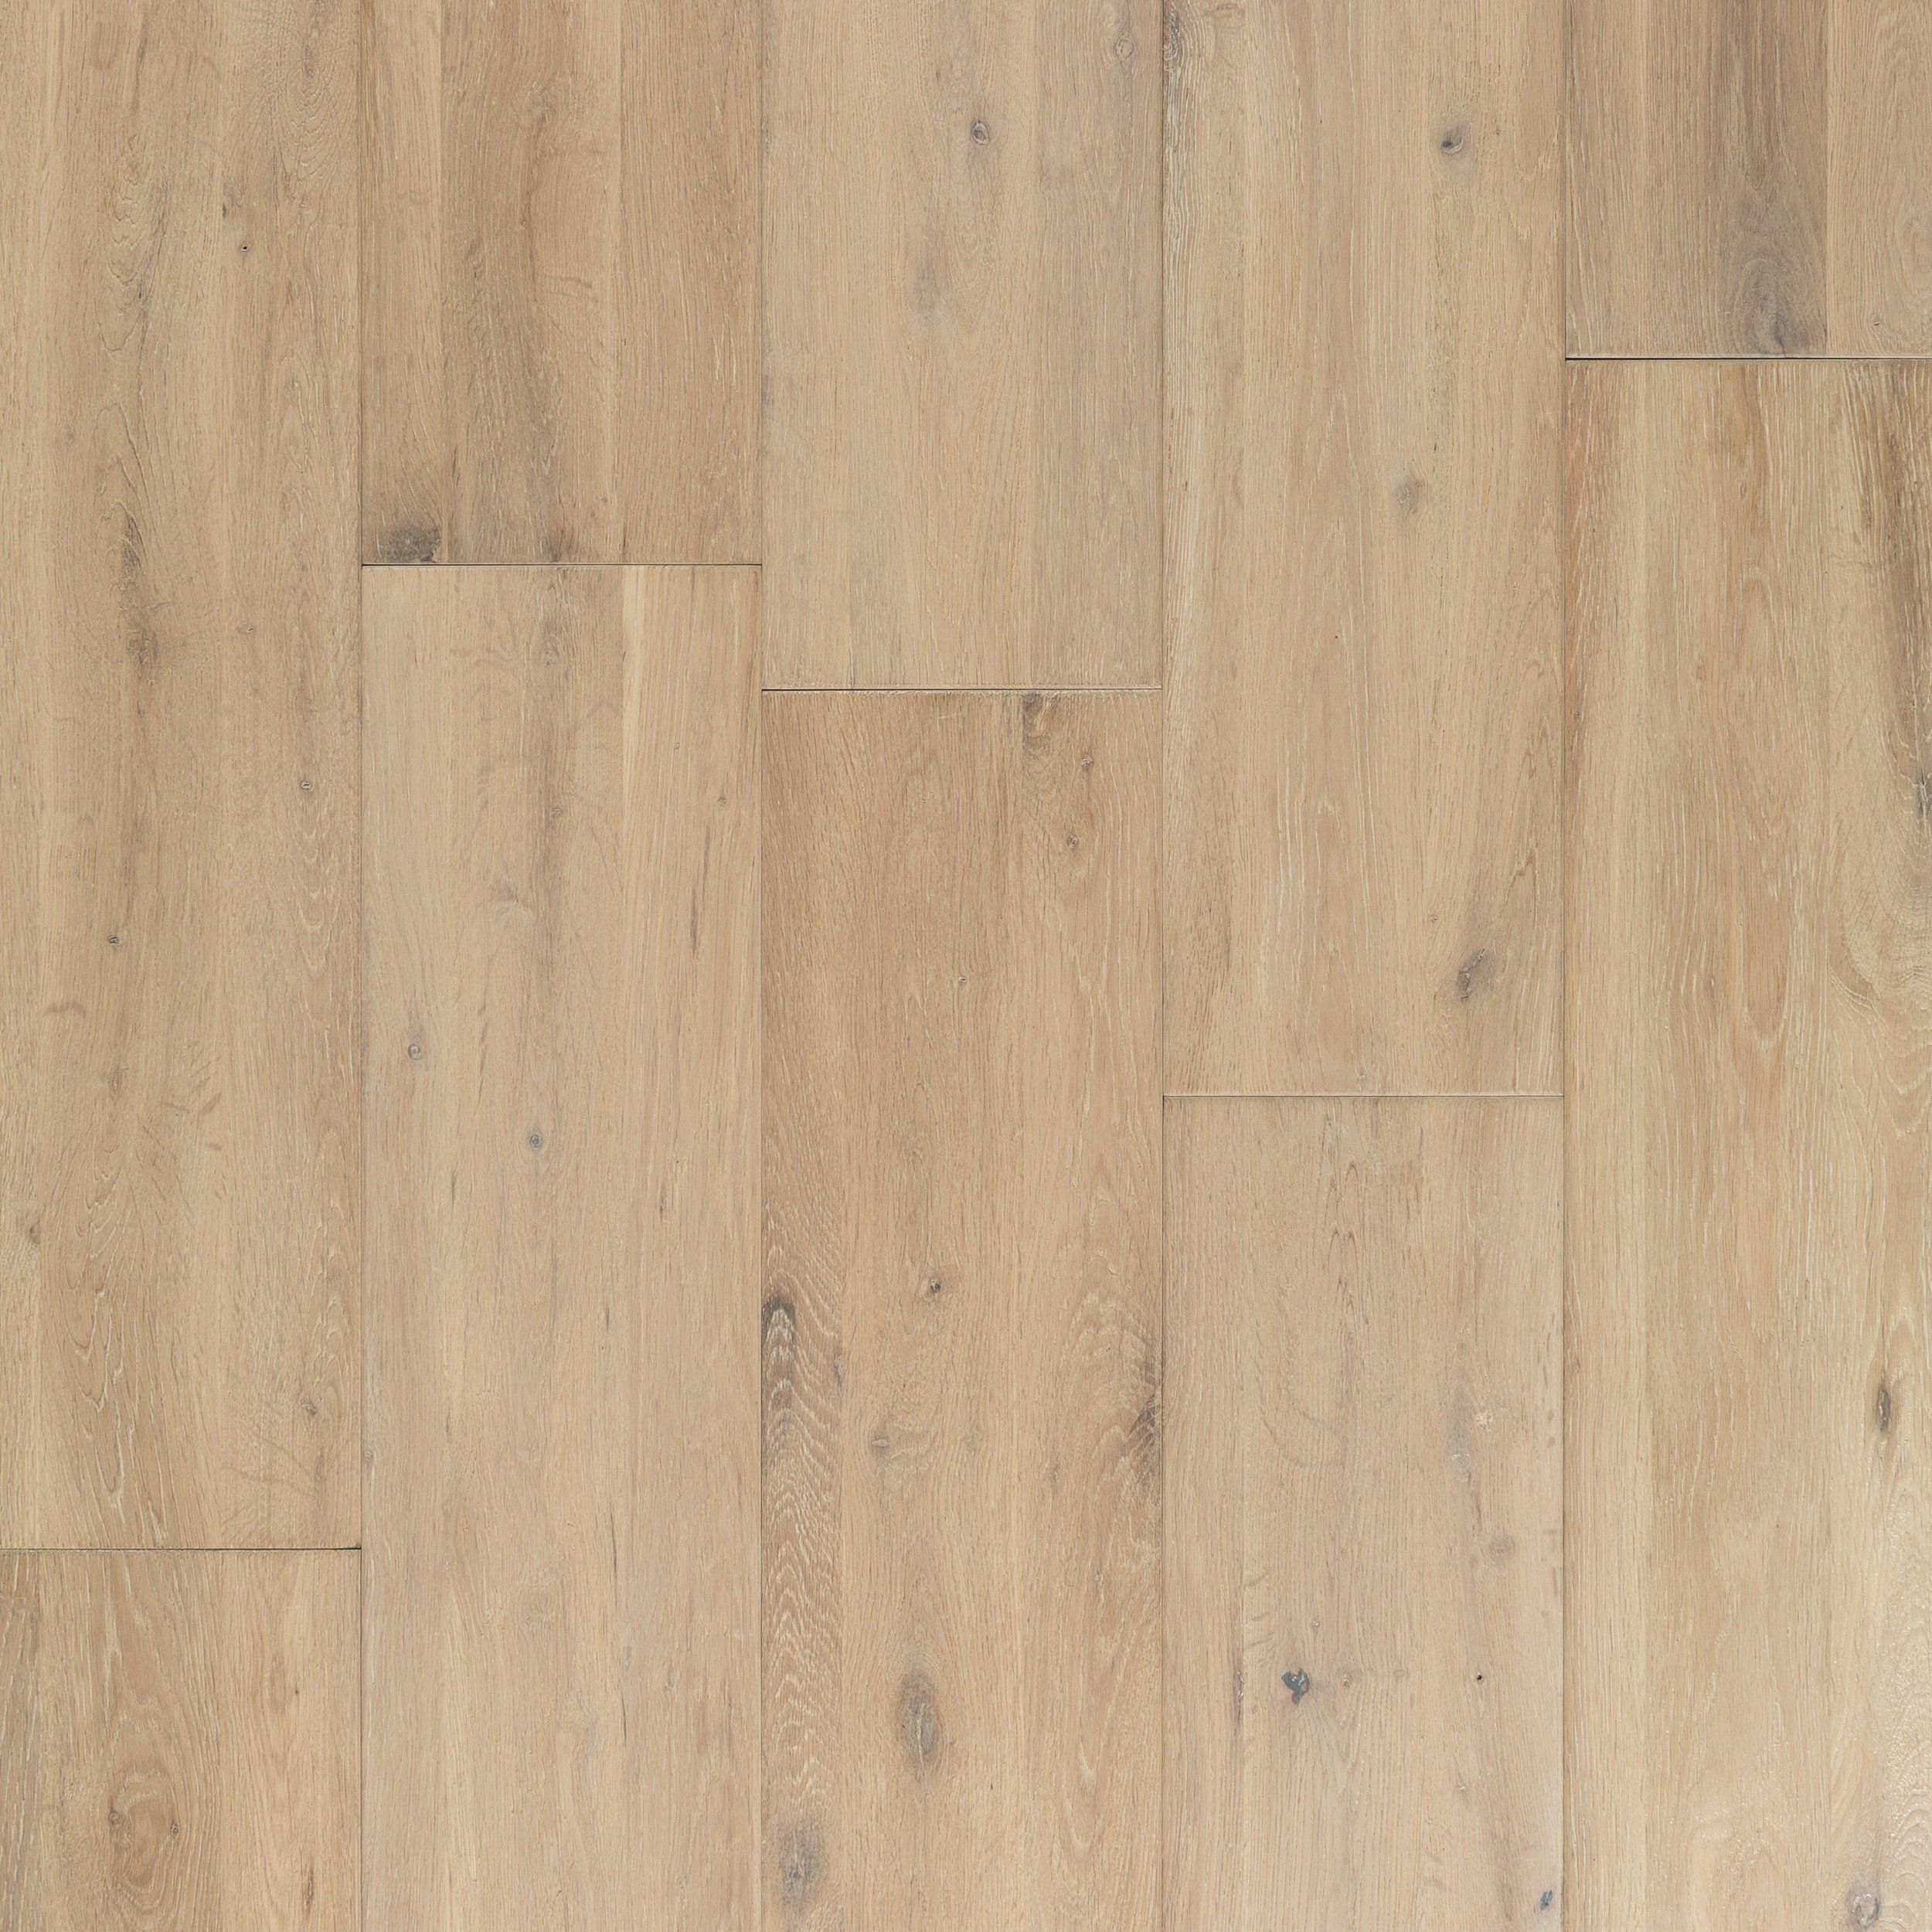 Seashell Acacia Solid Hardwood Solid Hardwood Floors Light Wood Floors Light Hardwood Floors